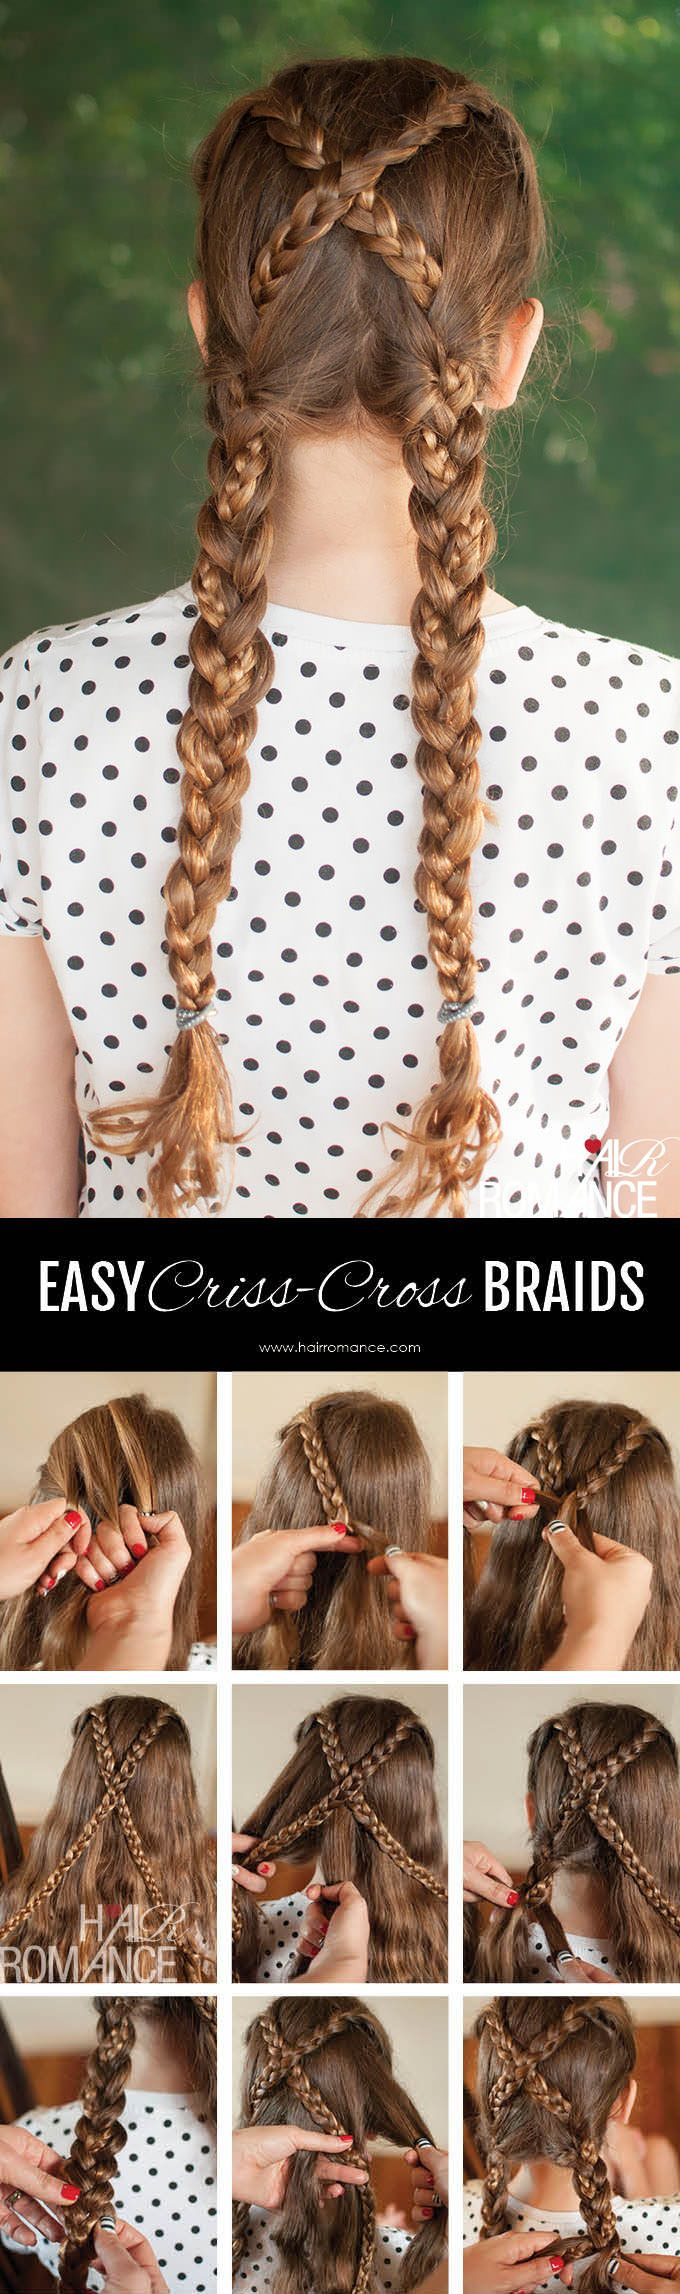 Braids - Get excited! You are going to have fab hair thanks to Haleigh | Pull through braid tutorial